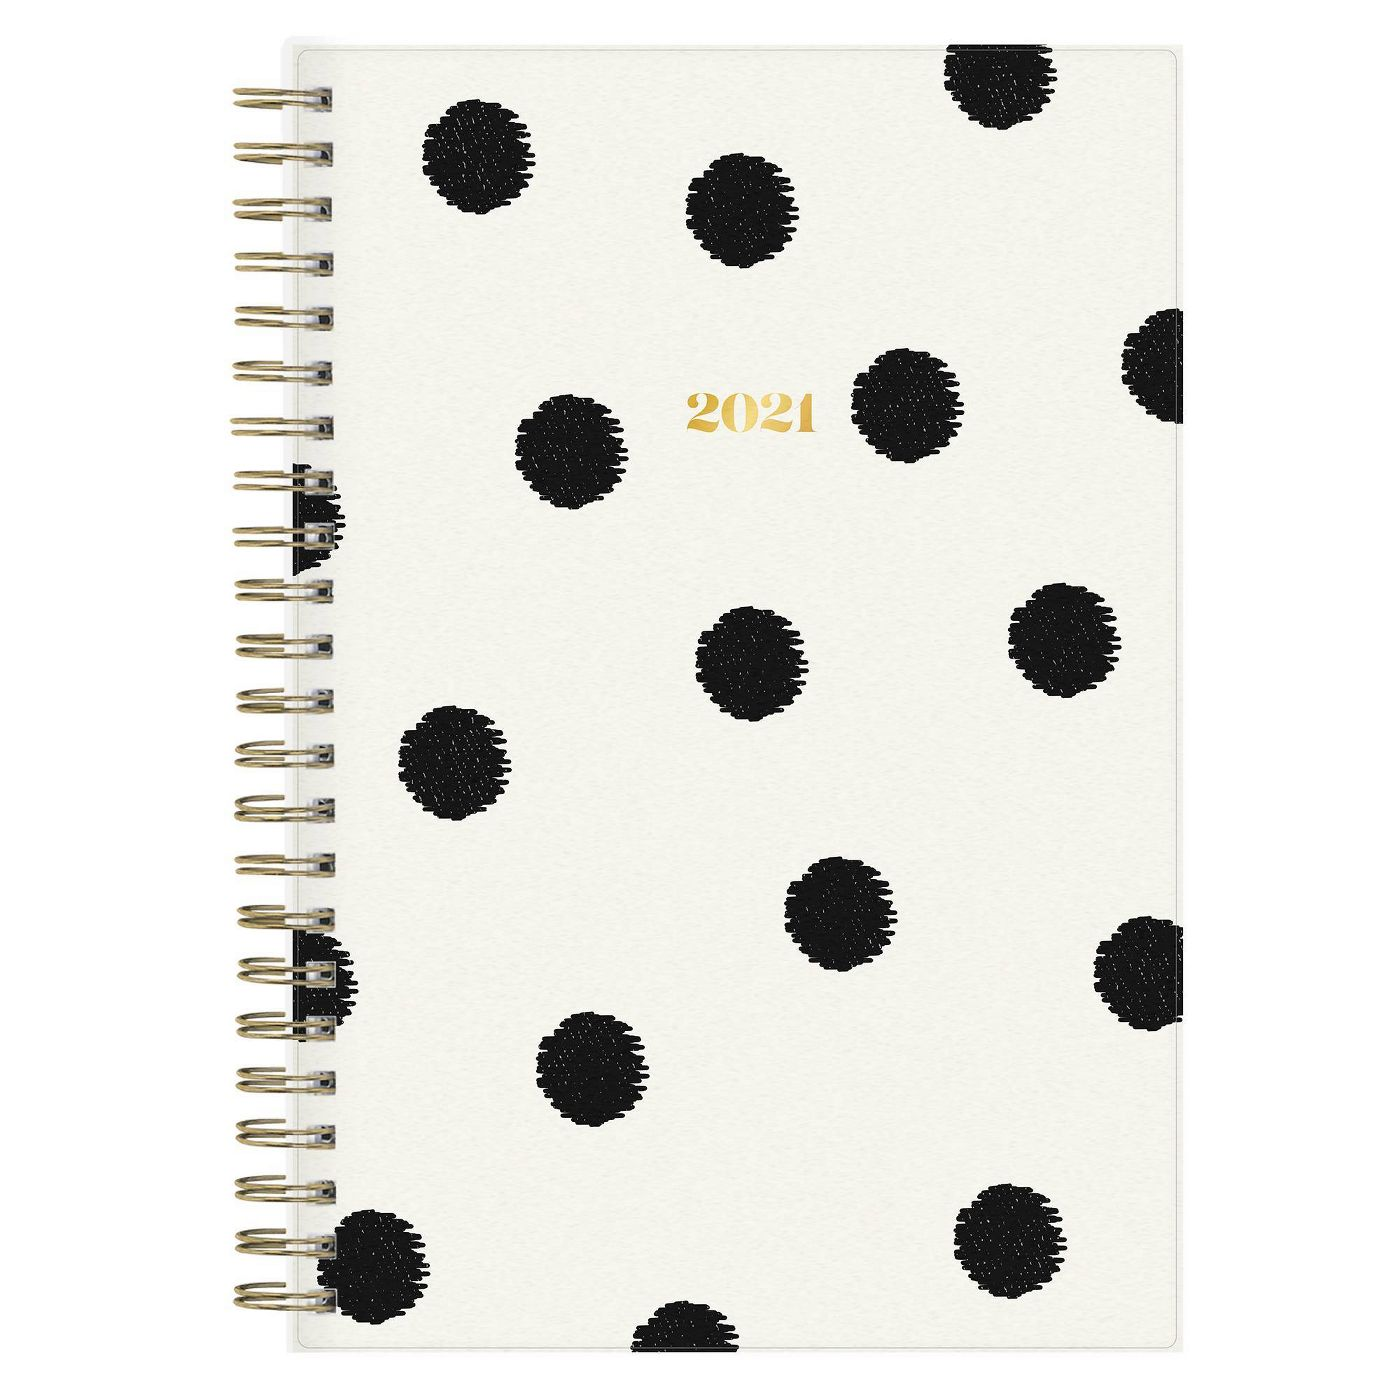 """2021 The Everygirl Planner 5"""" x 8"""" Frosted Plastic Weekly/Monthly Wirebound Luna - Blue Sky - image 1 of 11"""